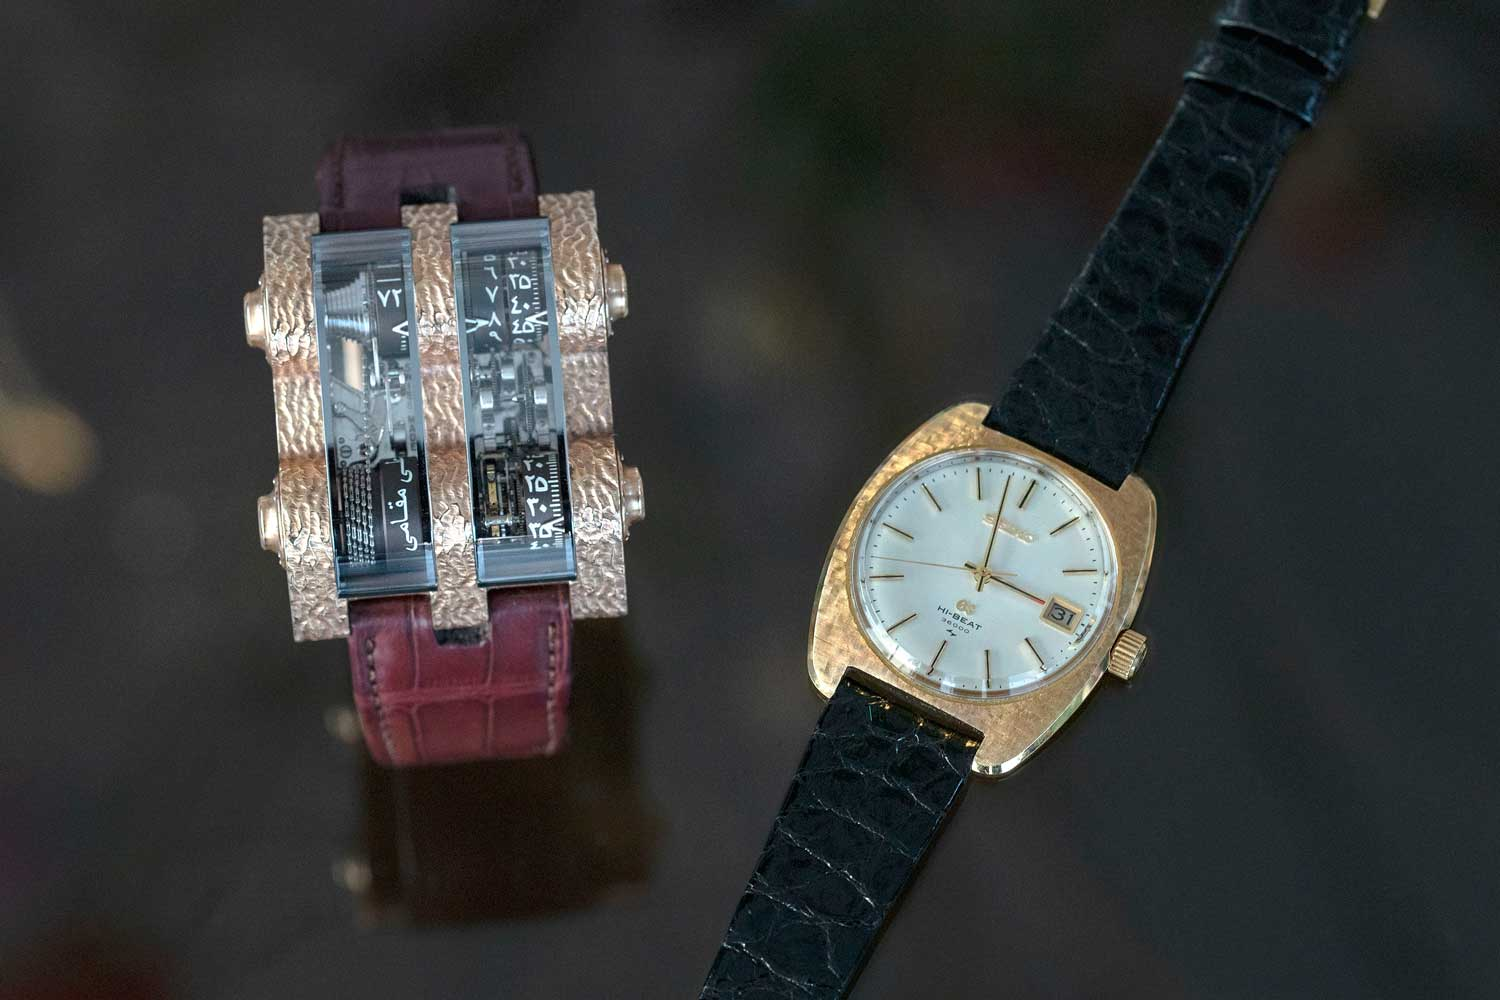 Santa Laura's pièce unique Cabestan with a hand-hammered-type case finishing and his Grand Seiko 45GS, which has a similar case finishing (©Revolution)